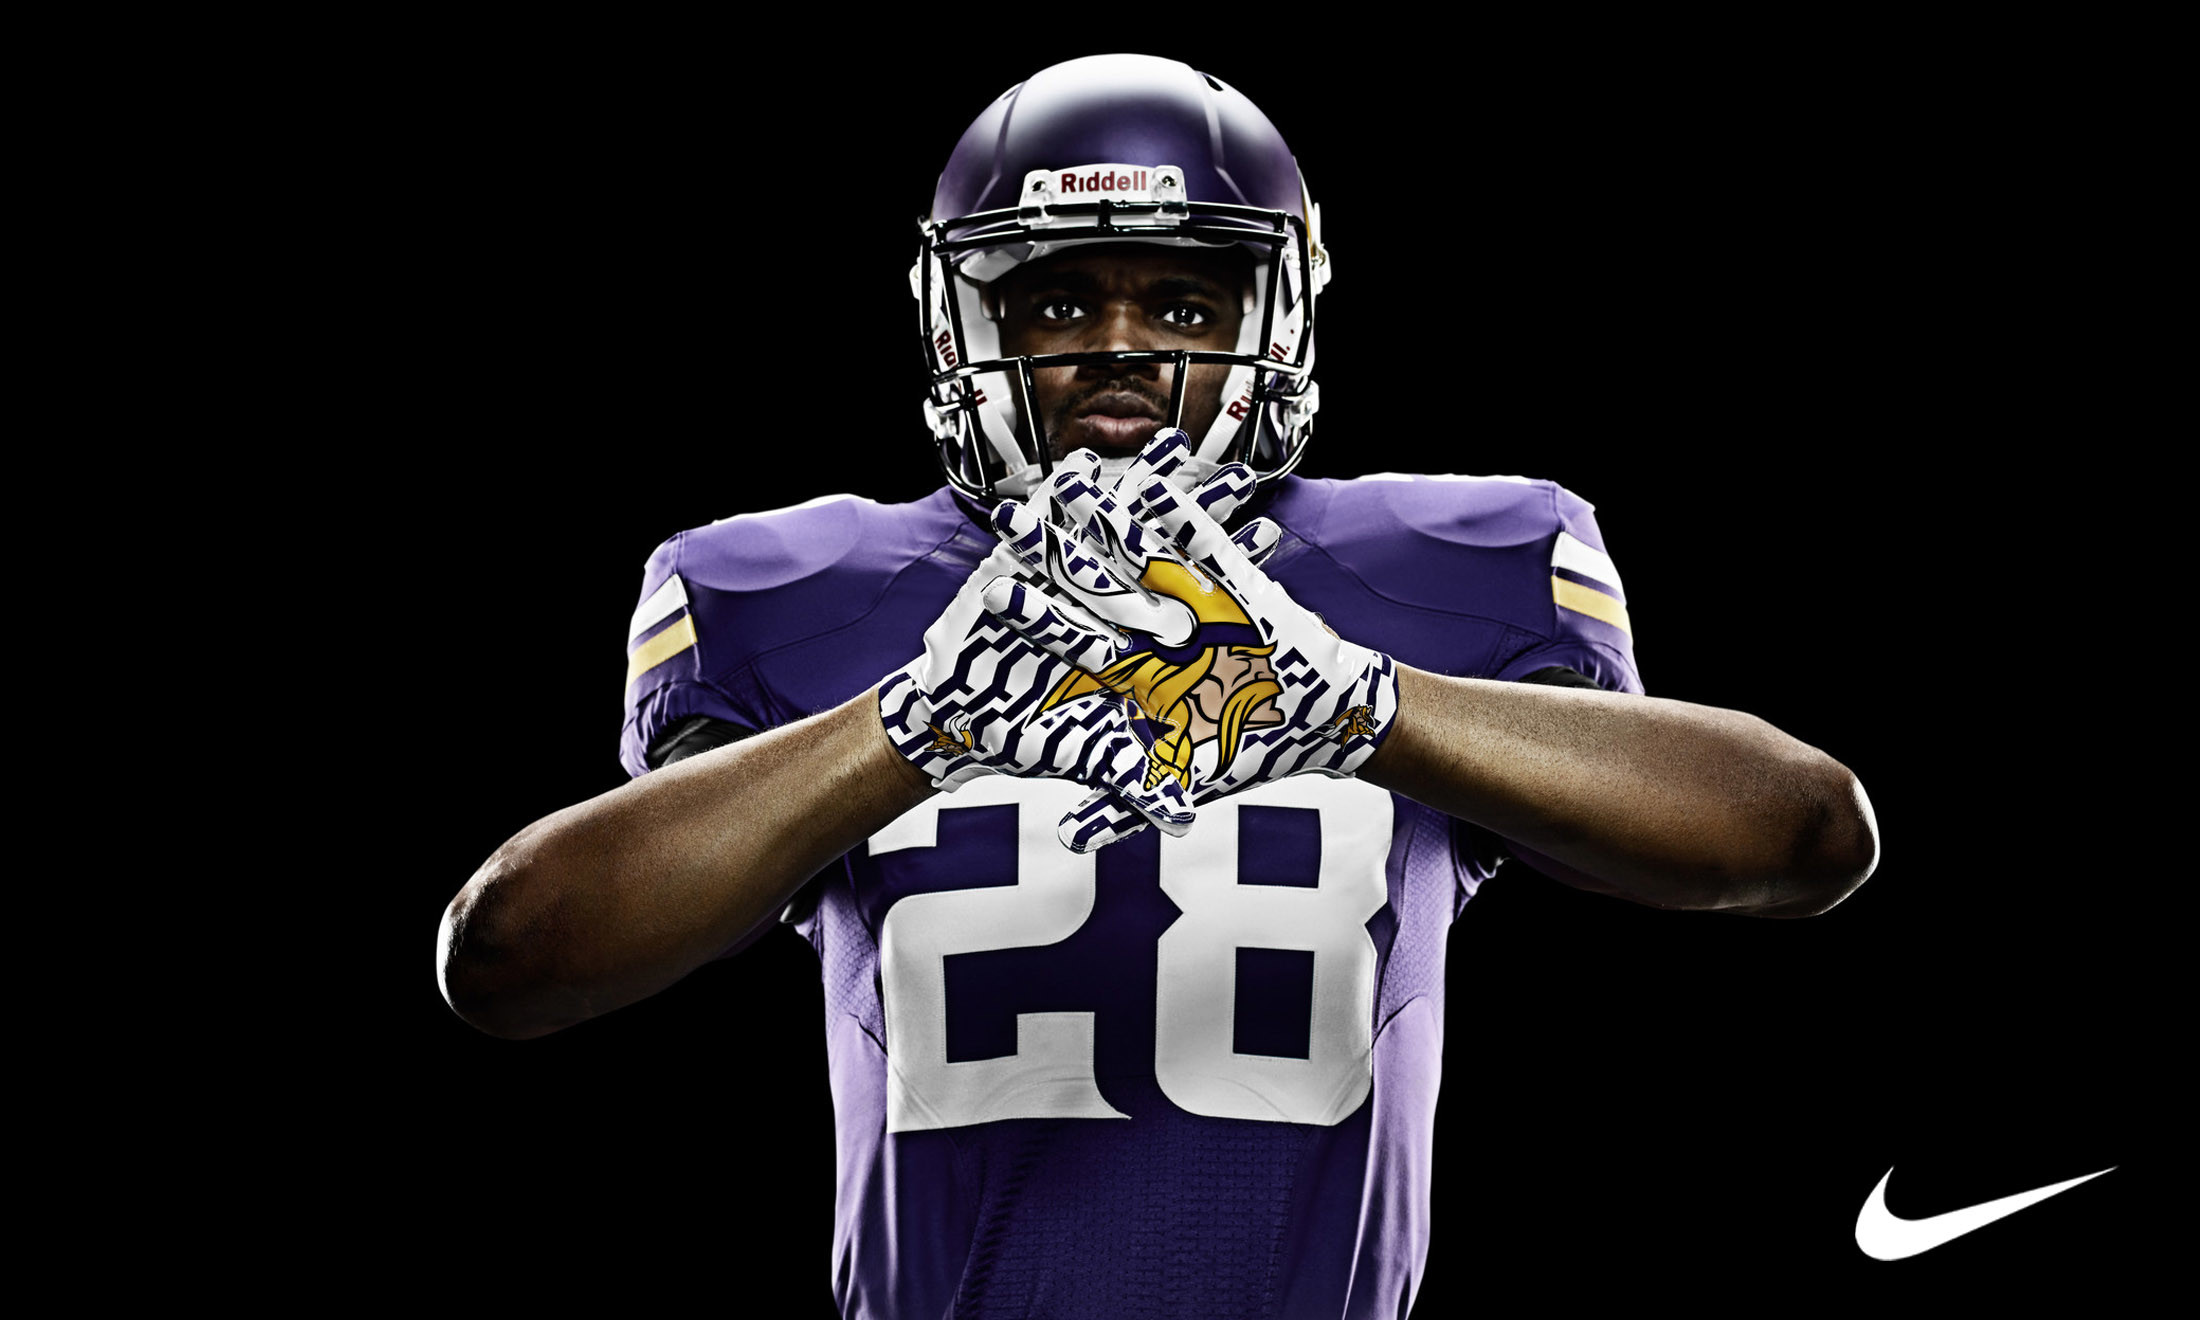 2200x1320 Minnesota Vikings Wallpapers Images Photos Pictures Backgrounds | HD  Wallpapers | Pinterest | Vikings, Hd wallpaper and Wallpaper